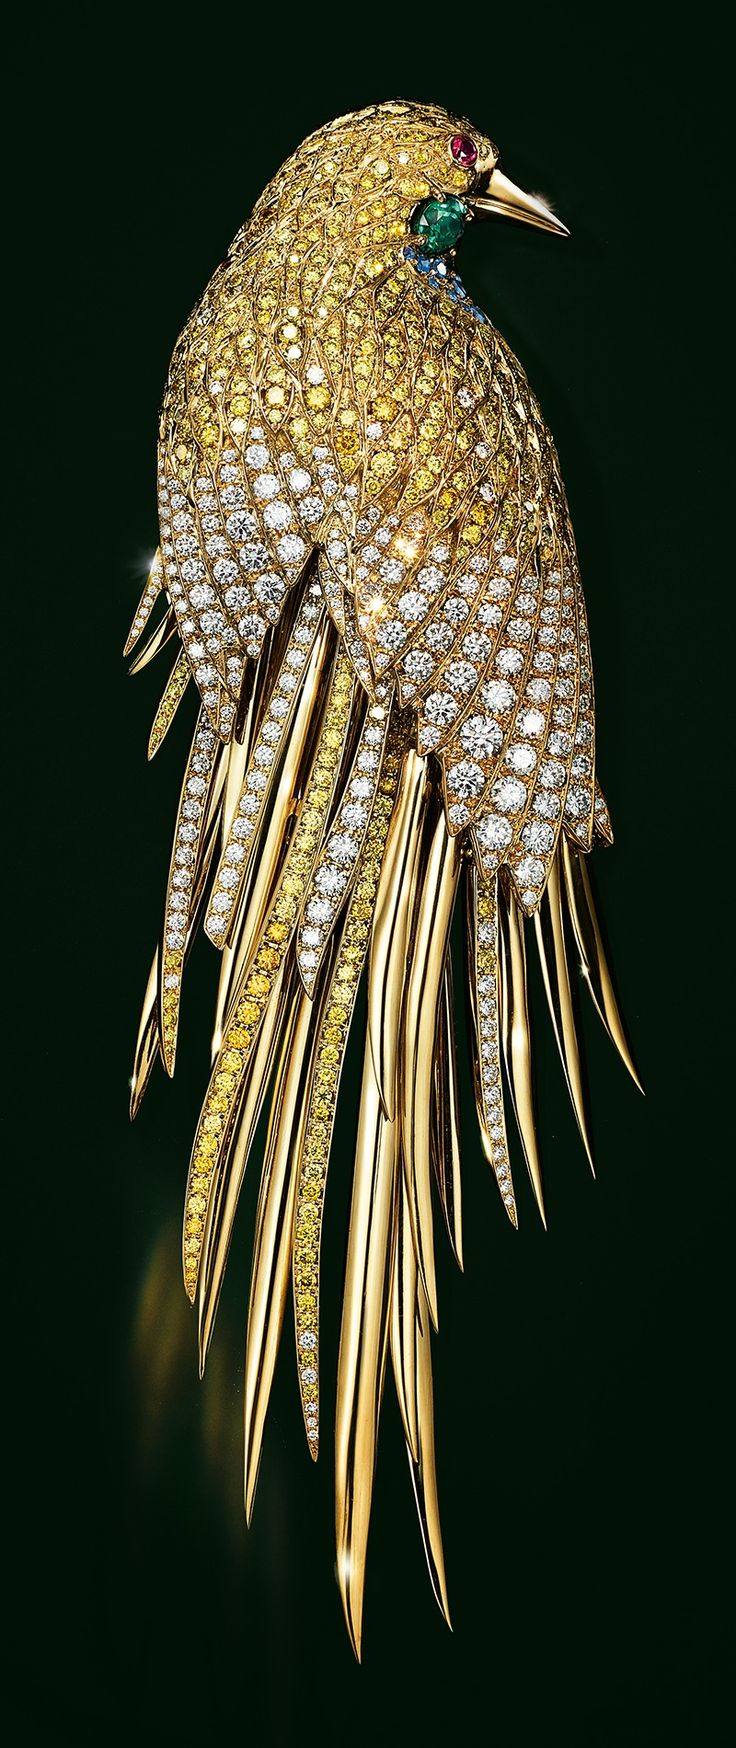 Brooch in 18k gold with yellow and white diamonds, sapphires, emeralds and spinel.